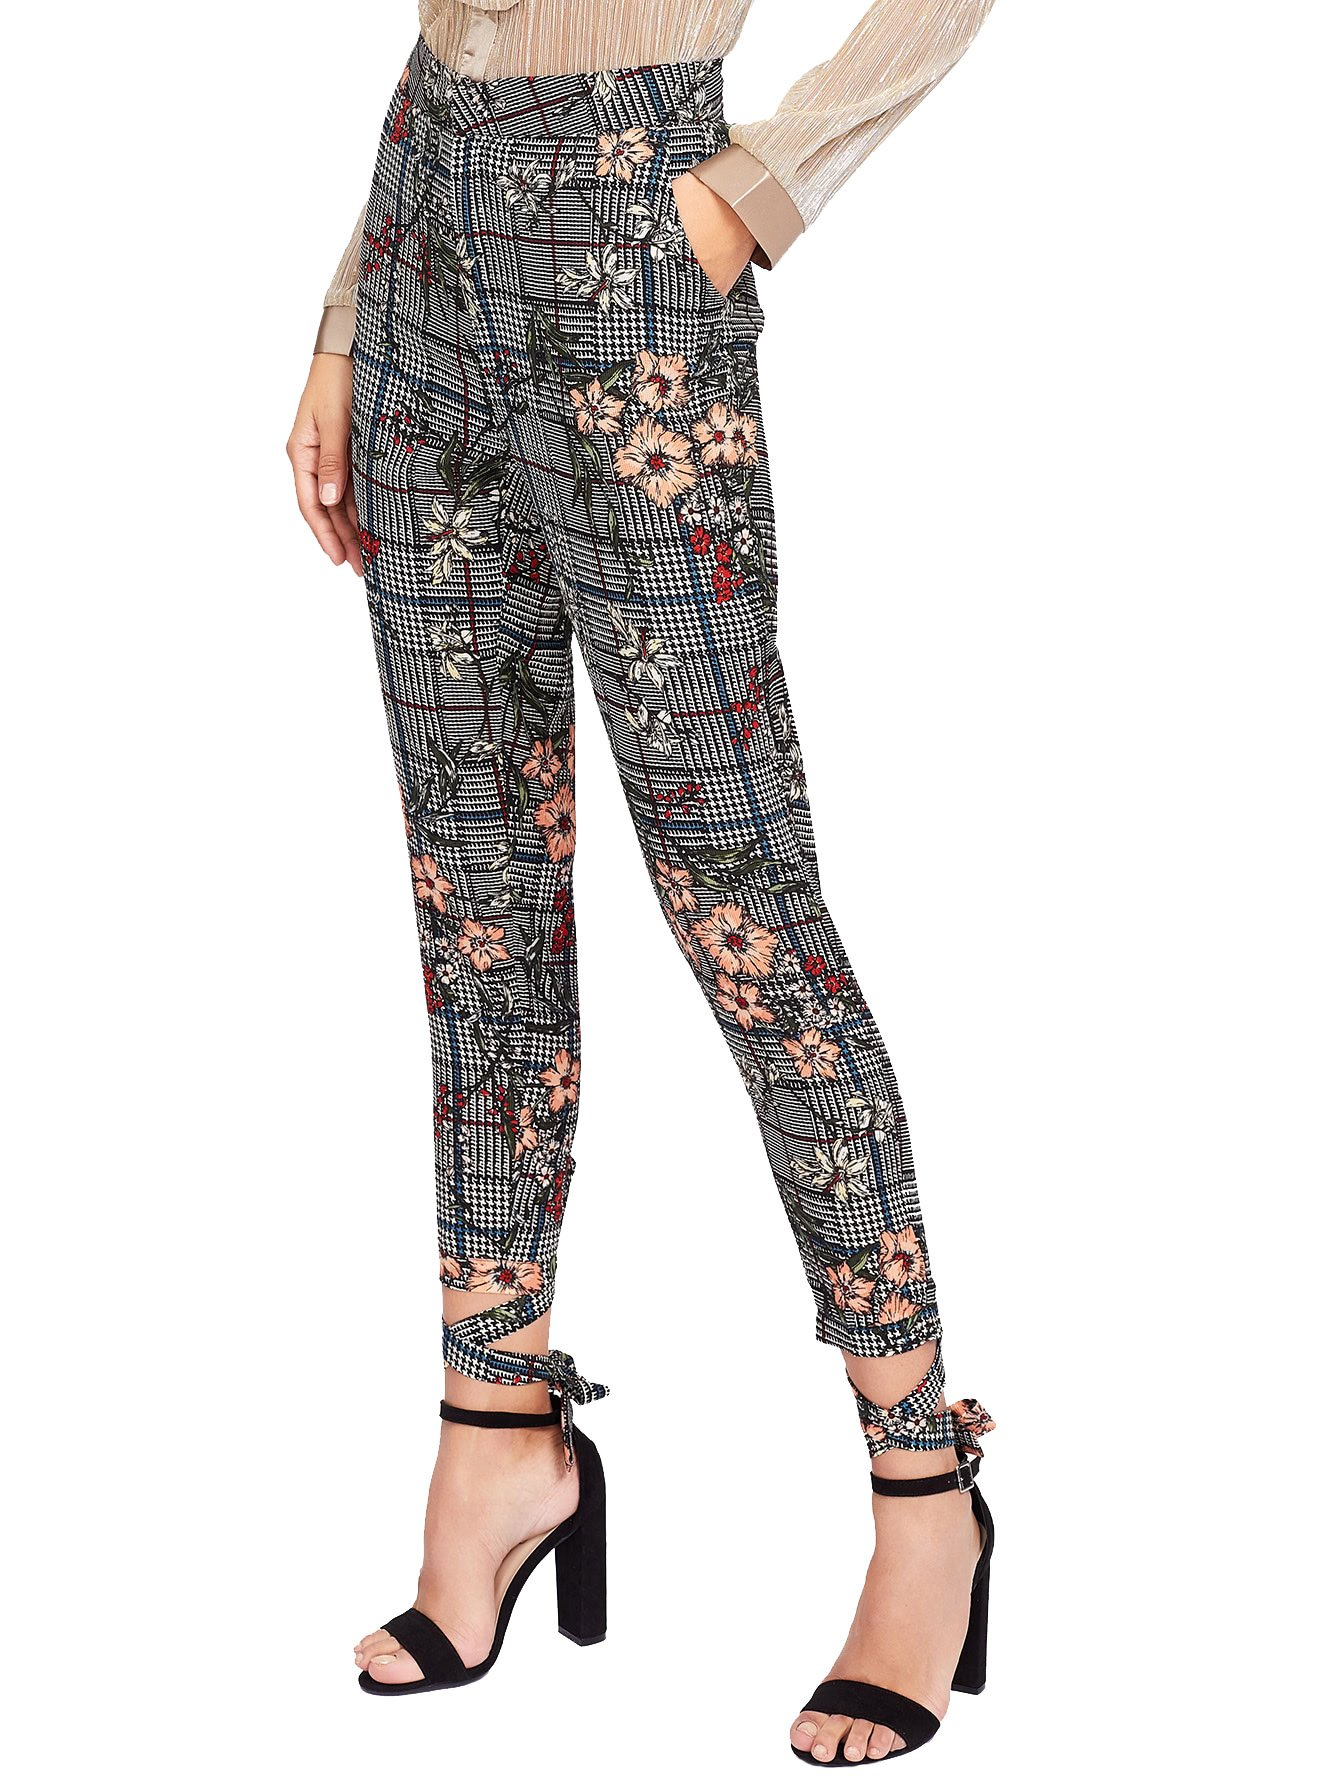 SweatyRocks Women's Floral Print Casual Plaid Capris Tie Cuff Skinny Work Pants (X-Large, Multi)